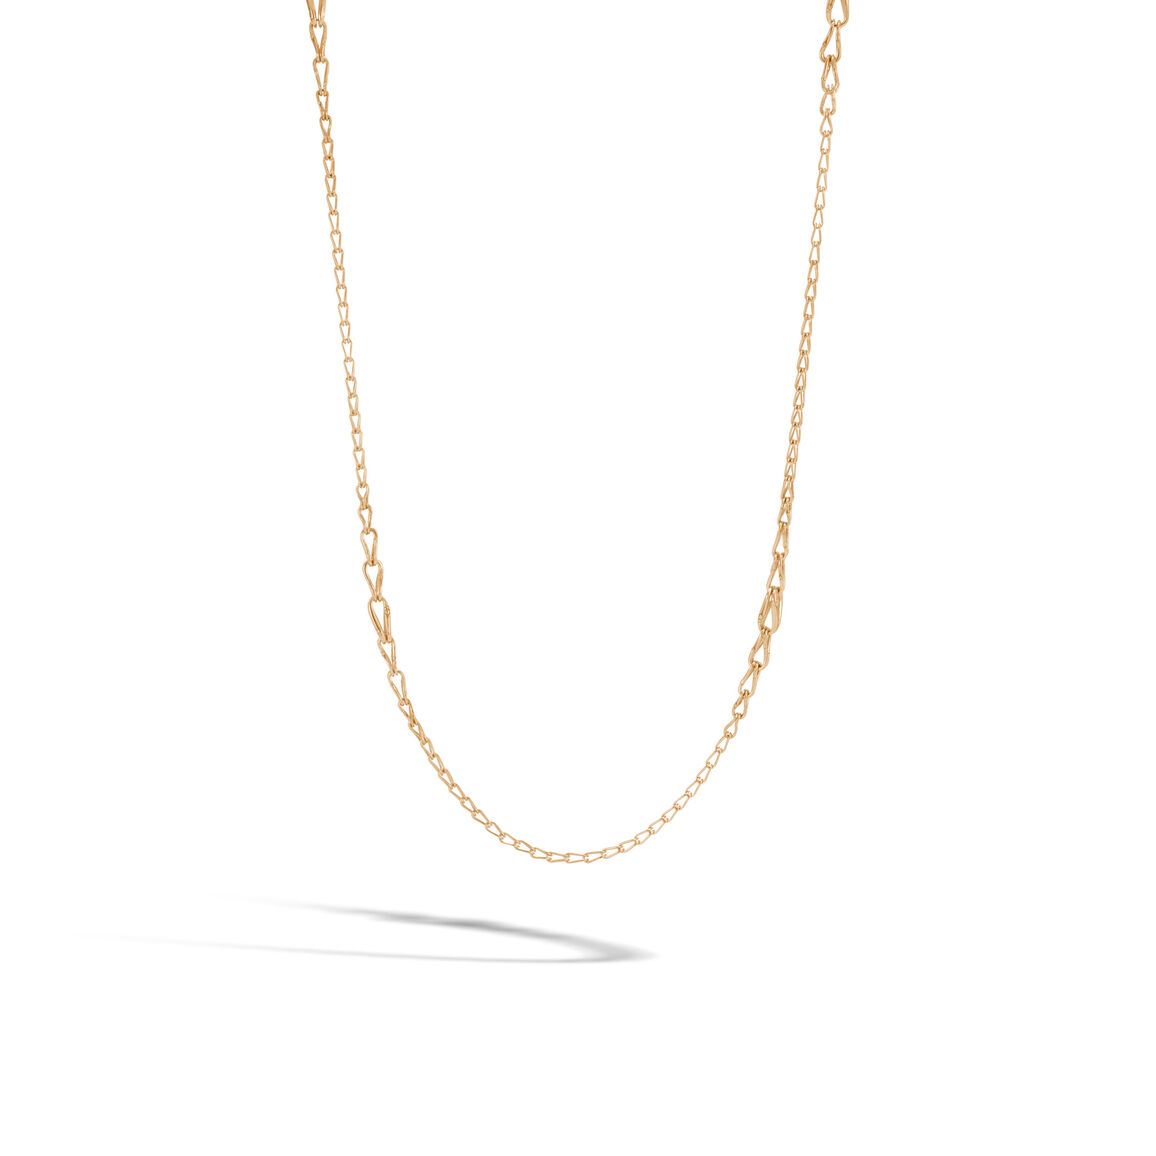 Bamboo 6MM Graduated Link Necklace in18K Gold